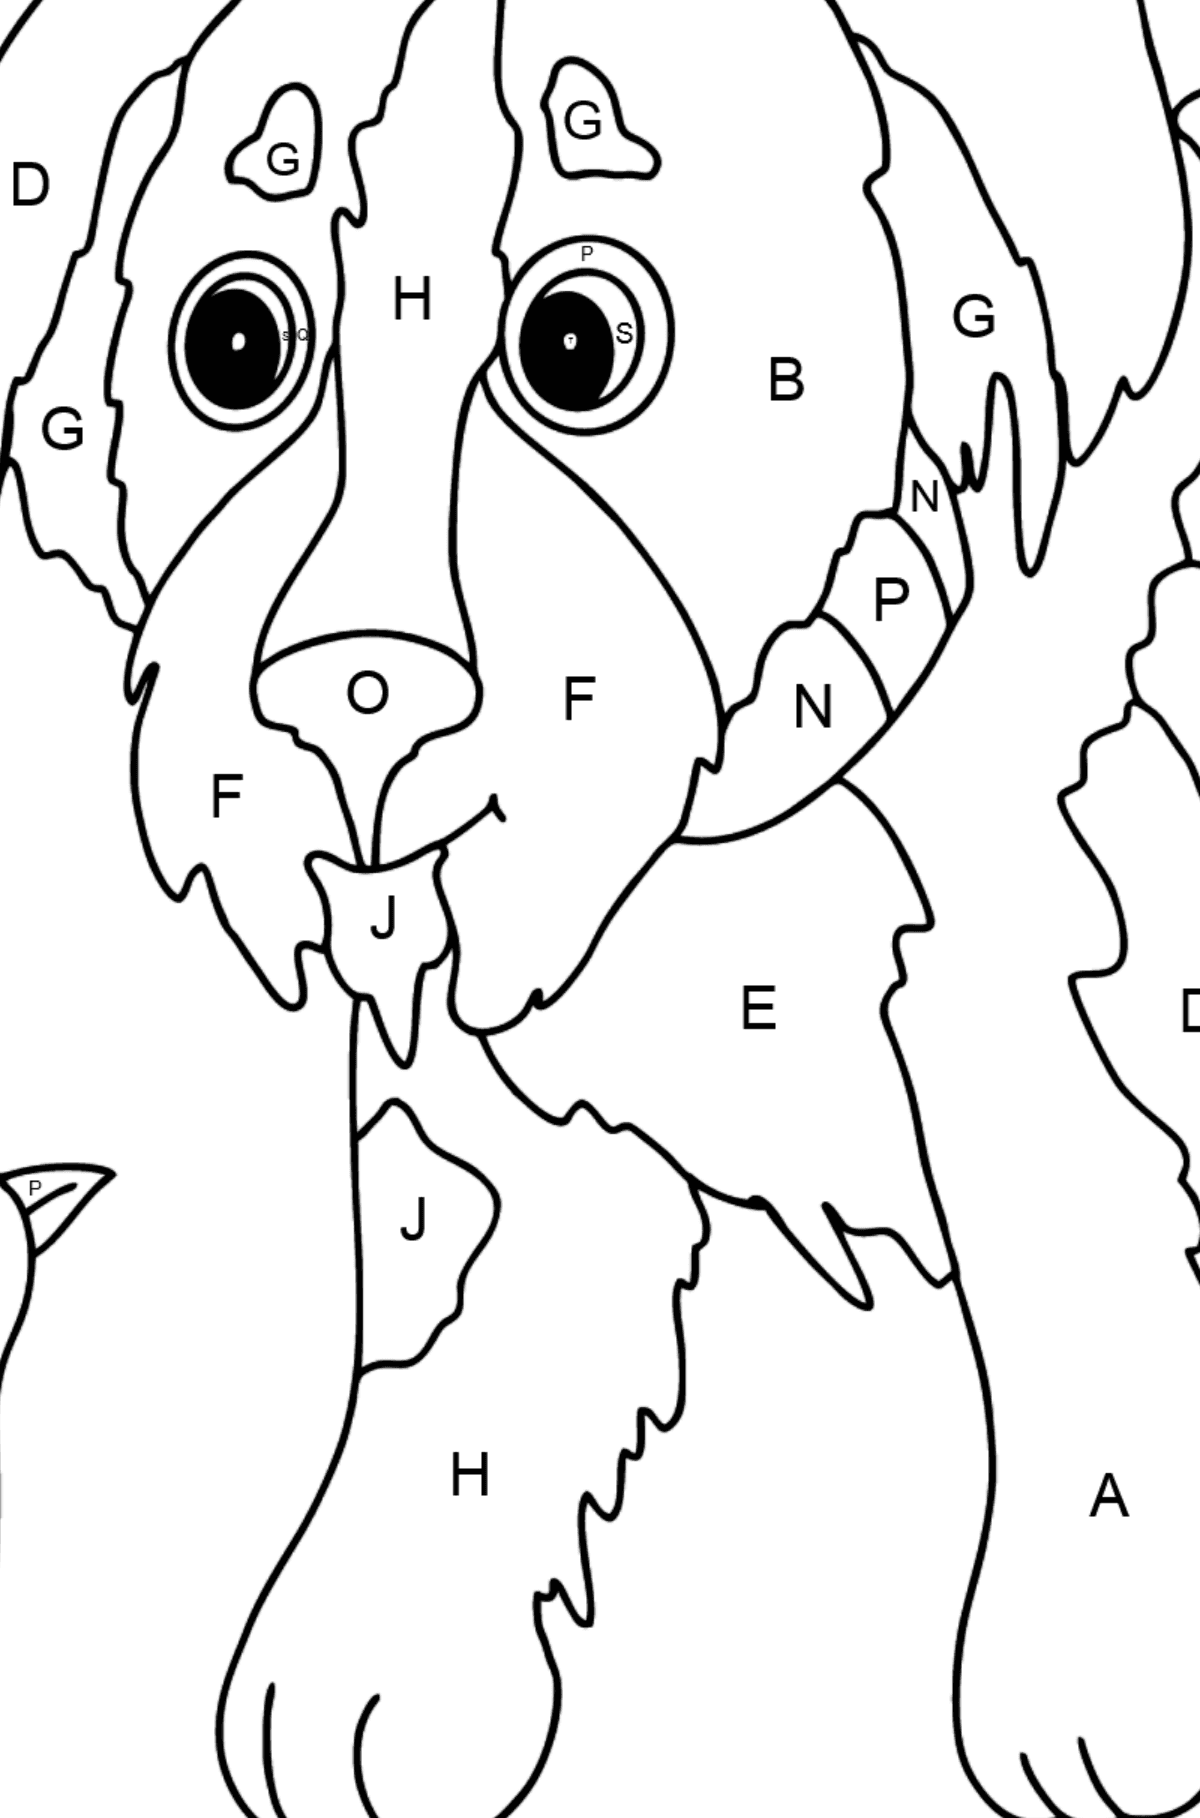 Coloring Page - A Dog is Playing with a Bird - Coloring by Letters for Kids